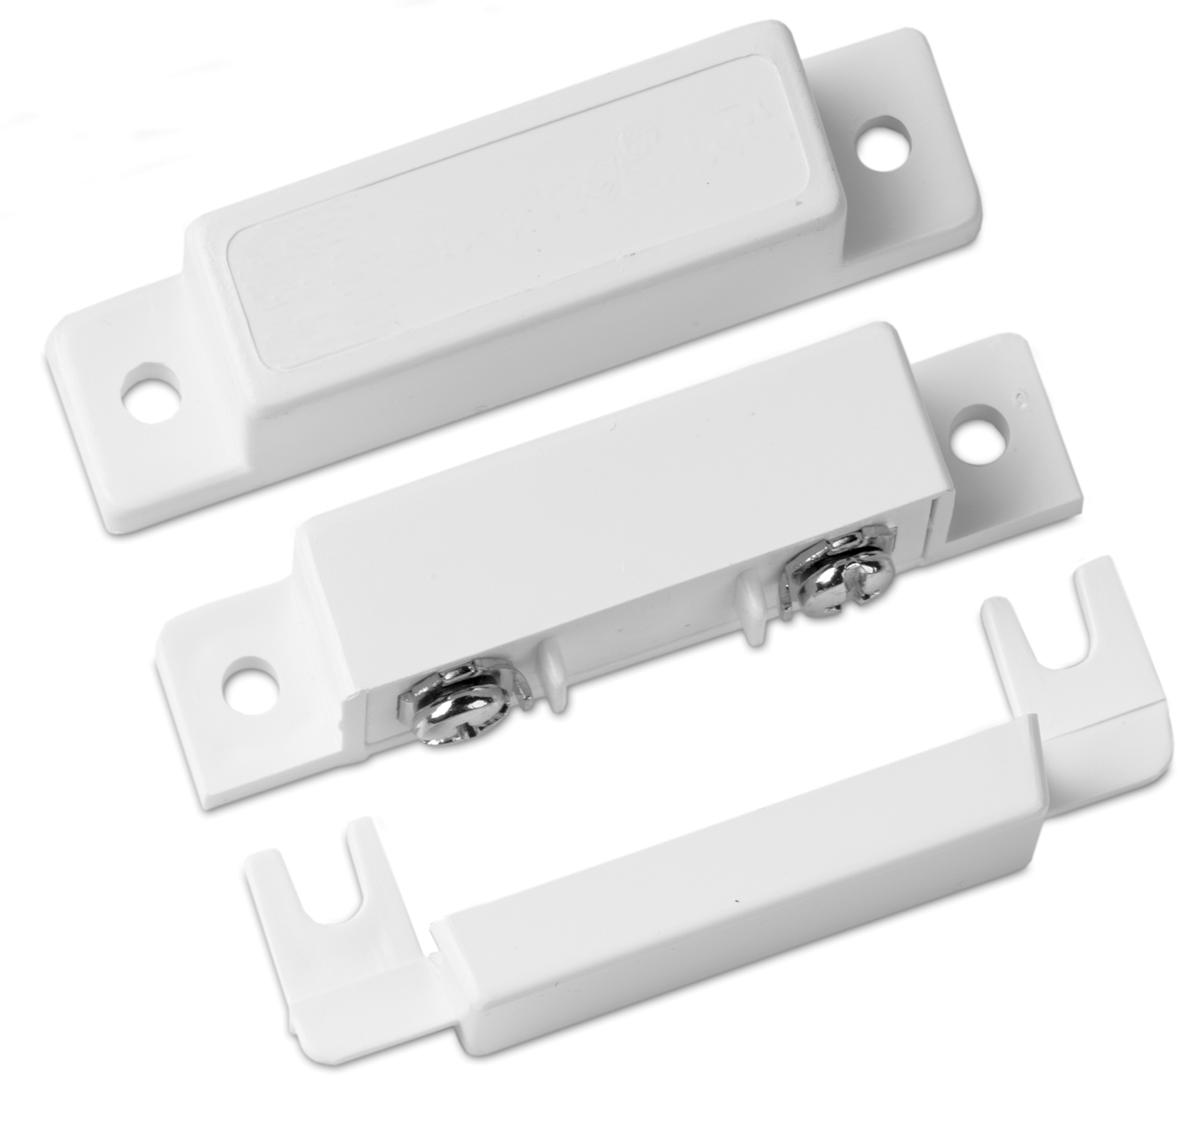 Sentrol 1085TN Surface Mount Contact w Terminals  sc 1 st  AlarmSuperStore.com & Sentrol 3008 White Shorty Roller Plunger Contact w/ Wire Leads ...